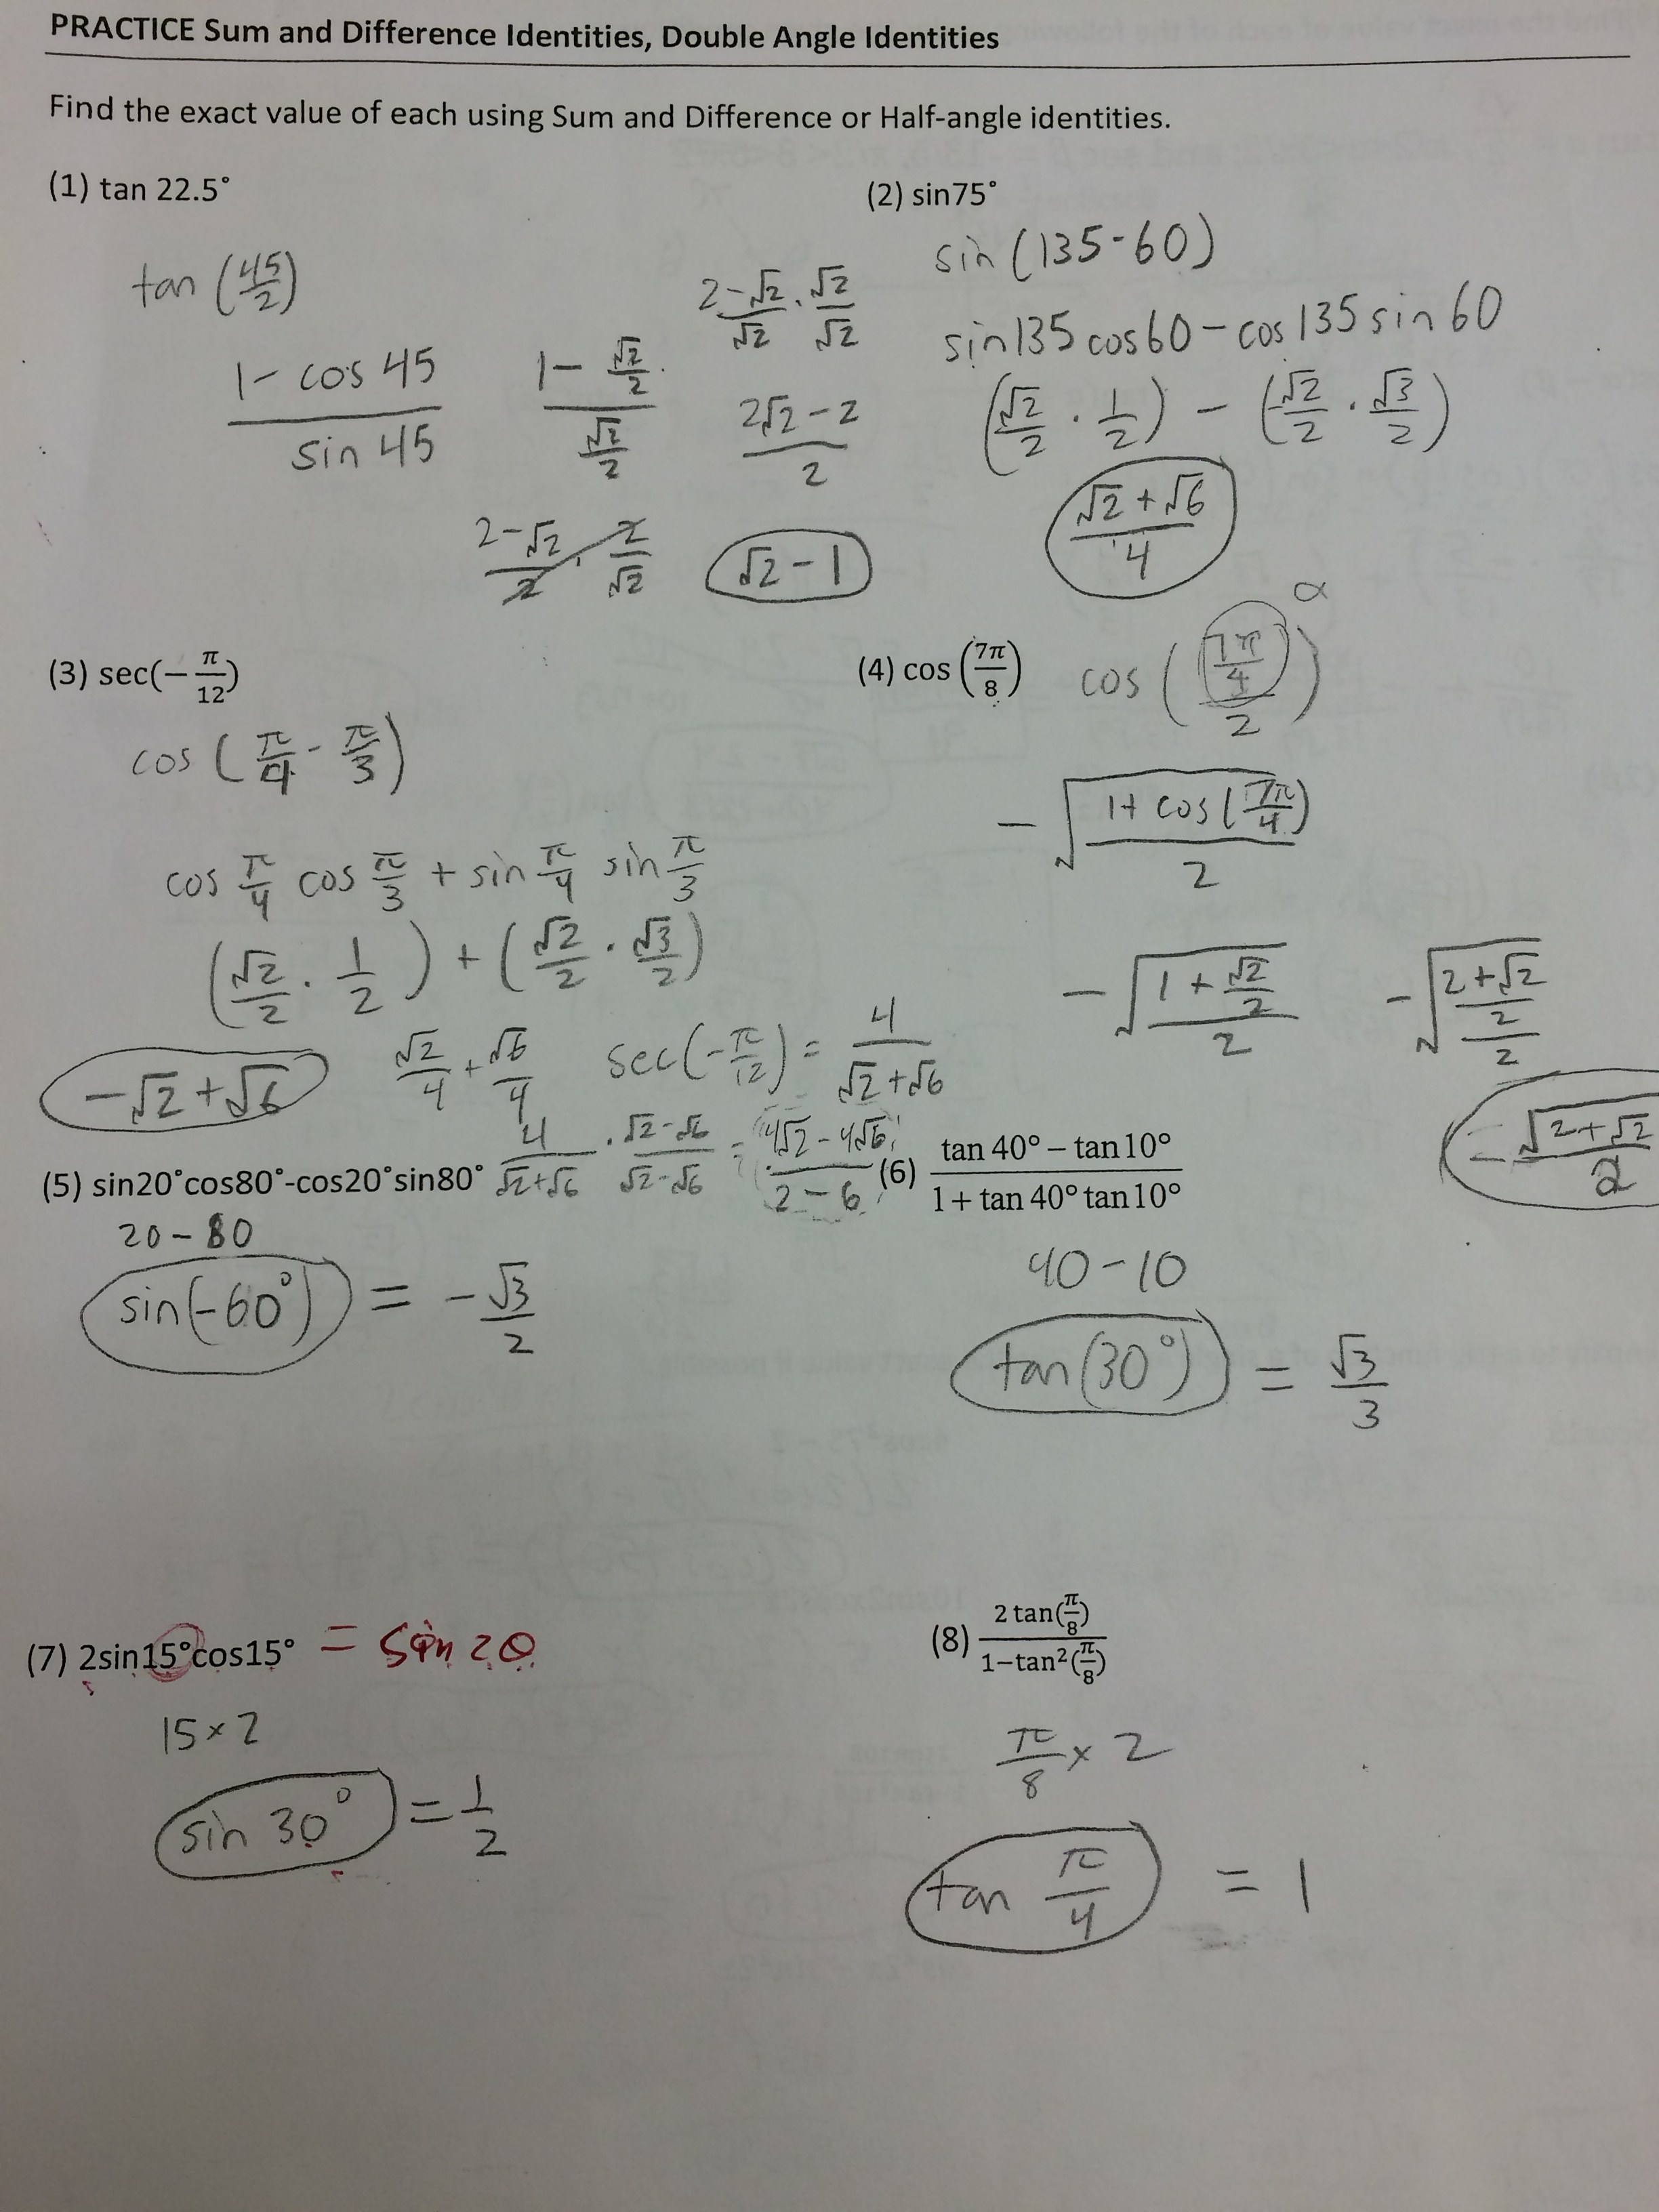 worksheet 5.2 Verifying Trigonometric Identities Worksheet Answers clayton valley charter high school due friday march 4